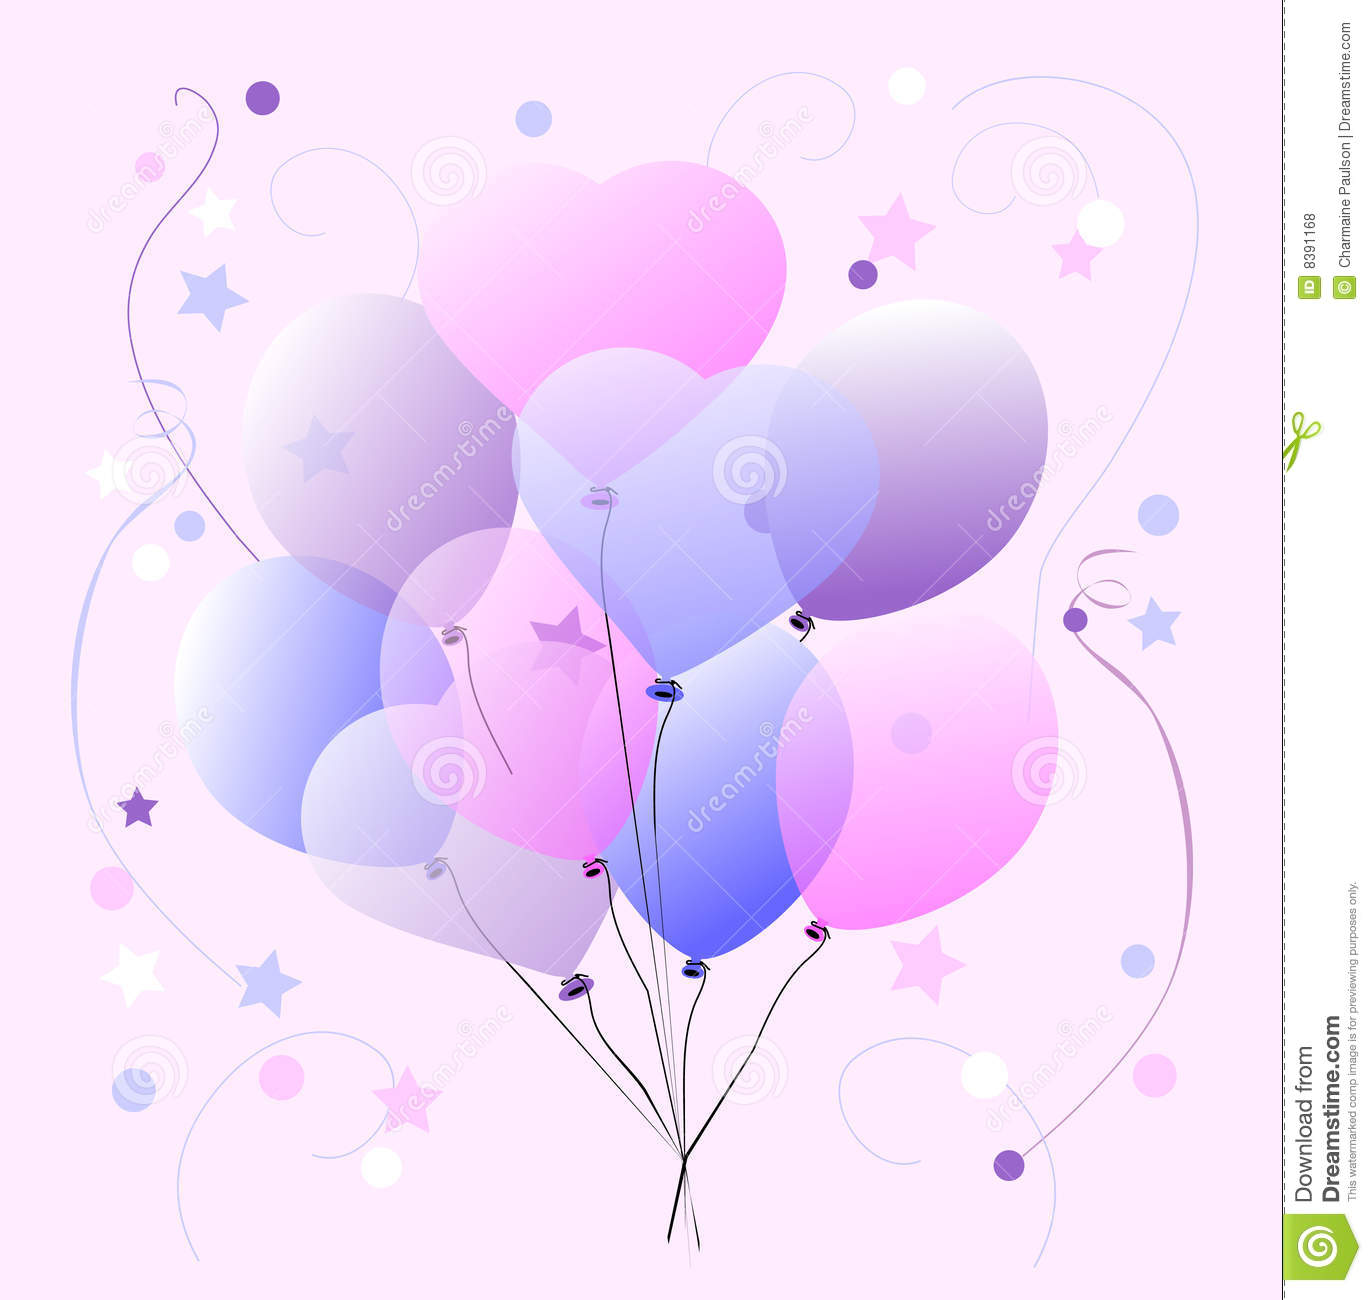 Sweet Pastel Balloons Royalty Free Stock Photos - Image: 8391168